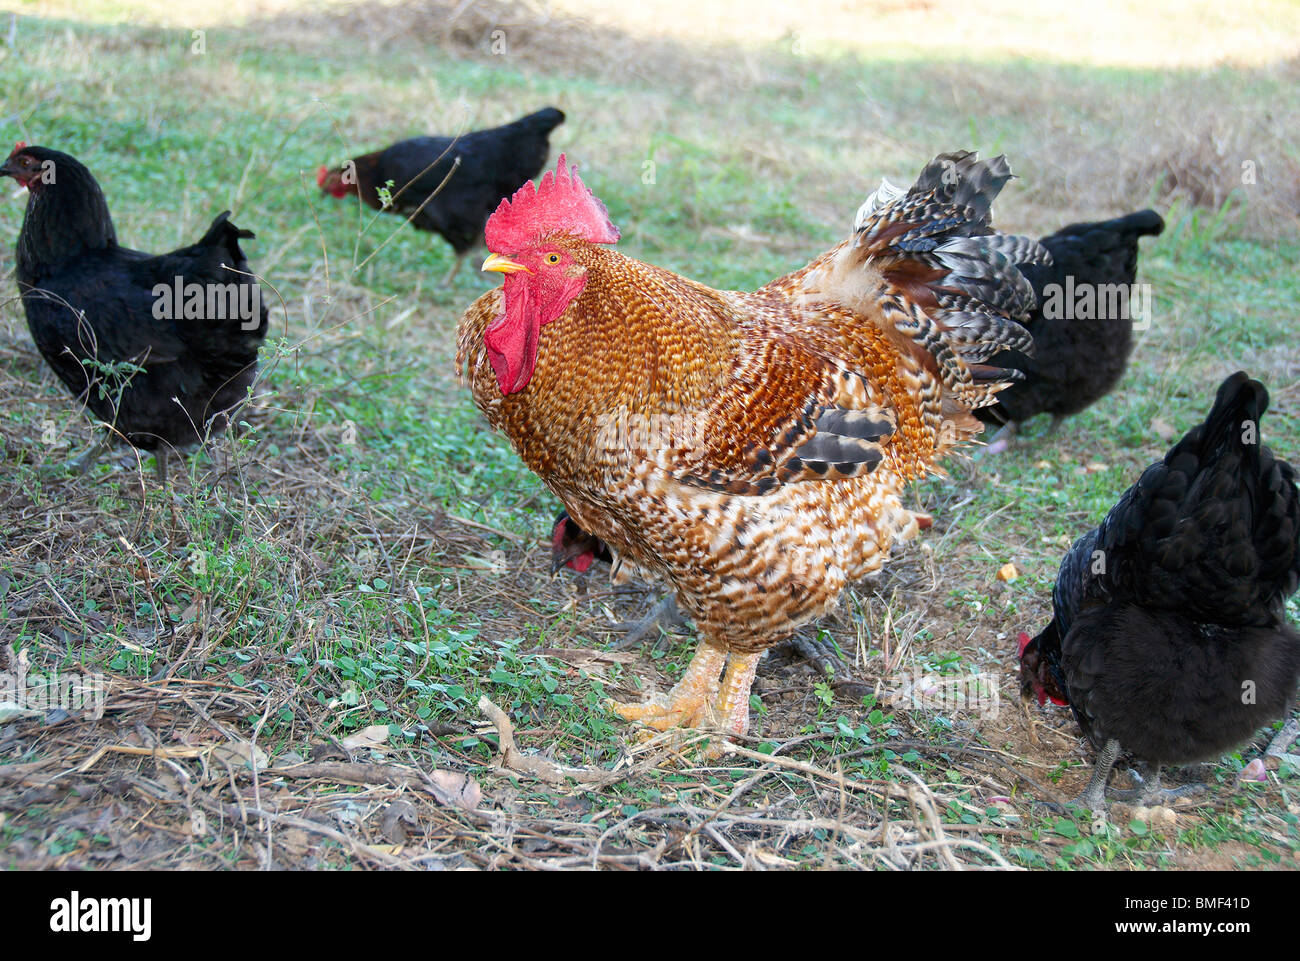 Cockerel with hens - Stock Image